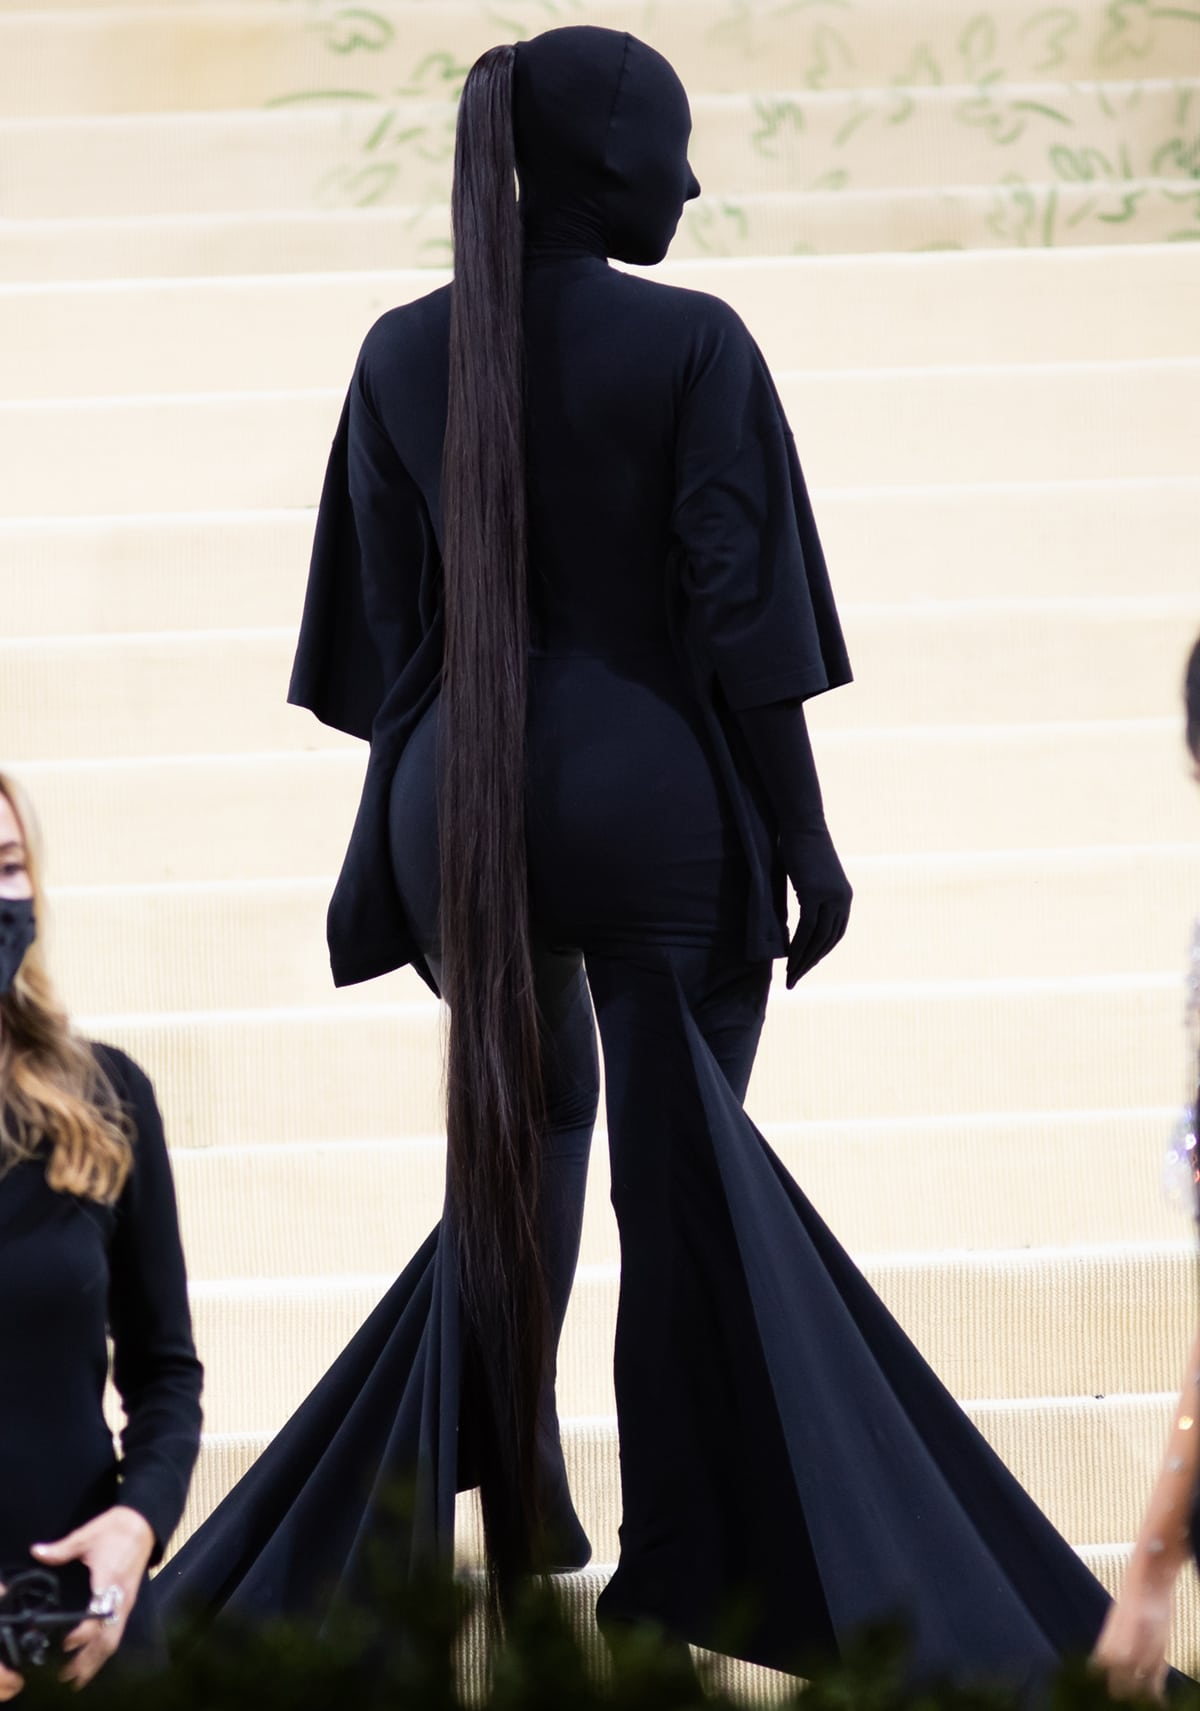 Kim Kardashian covered up completely in black for the Met Gala 2021